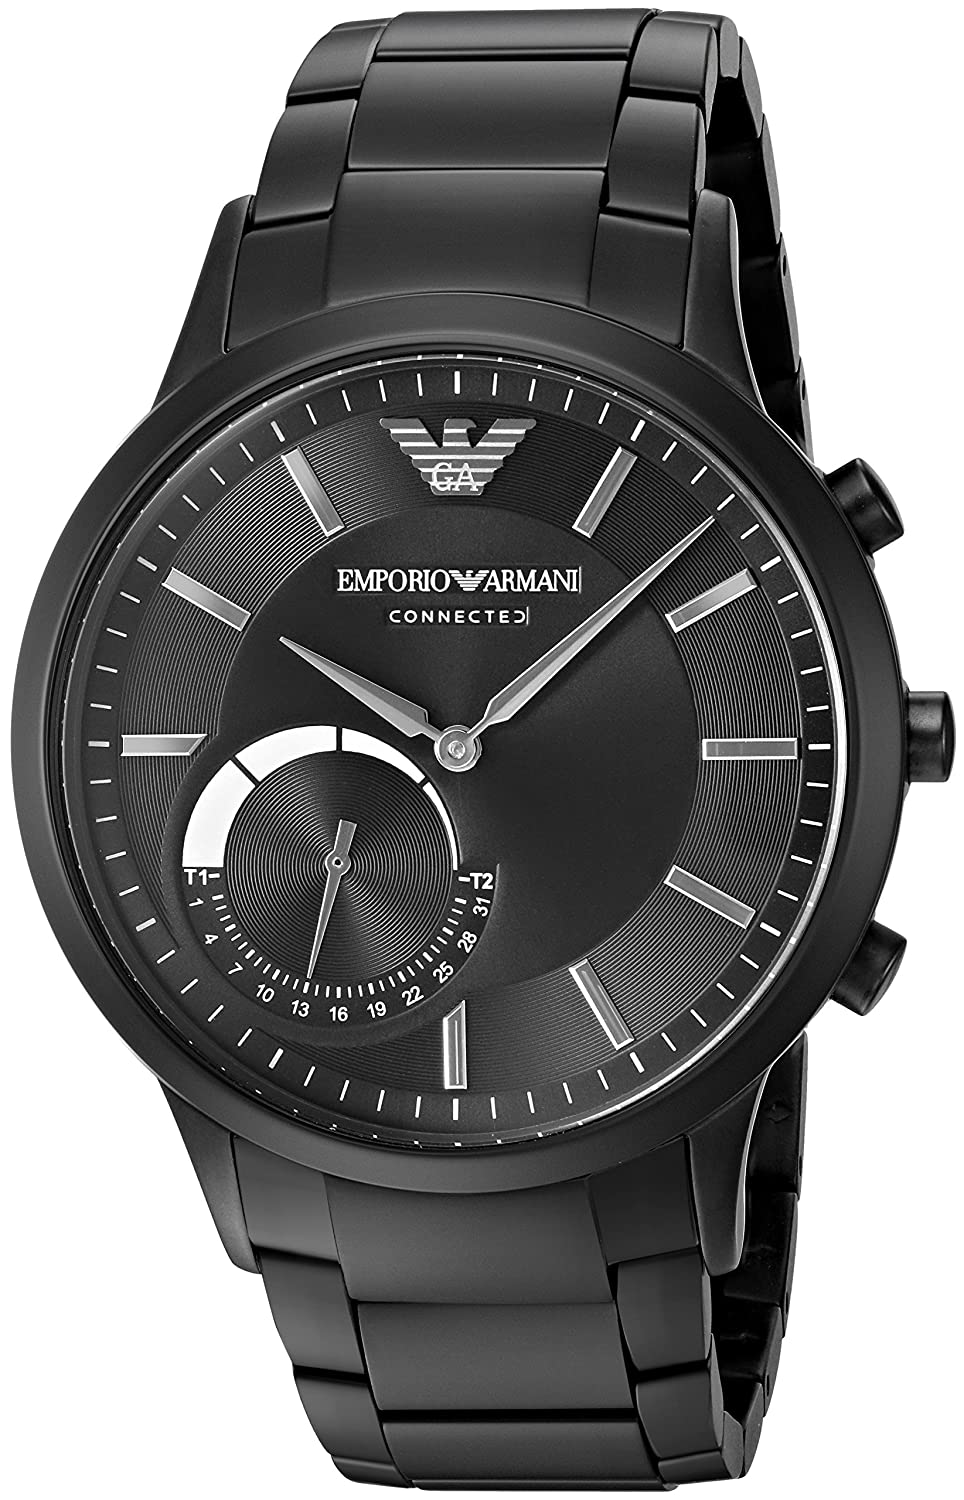 Emporio Armani Connected: Hybrid Smartwatch Presented Long-Running